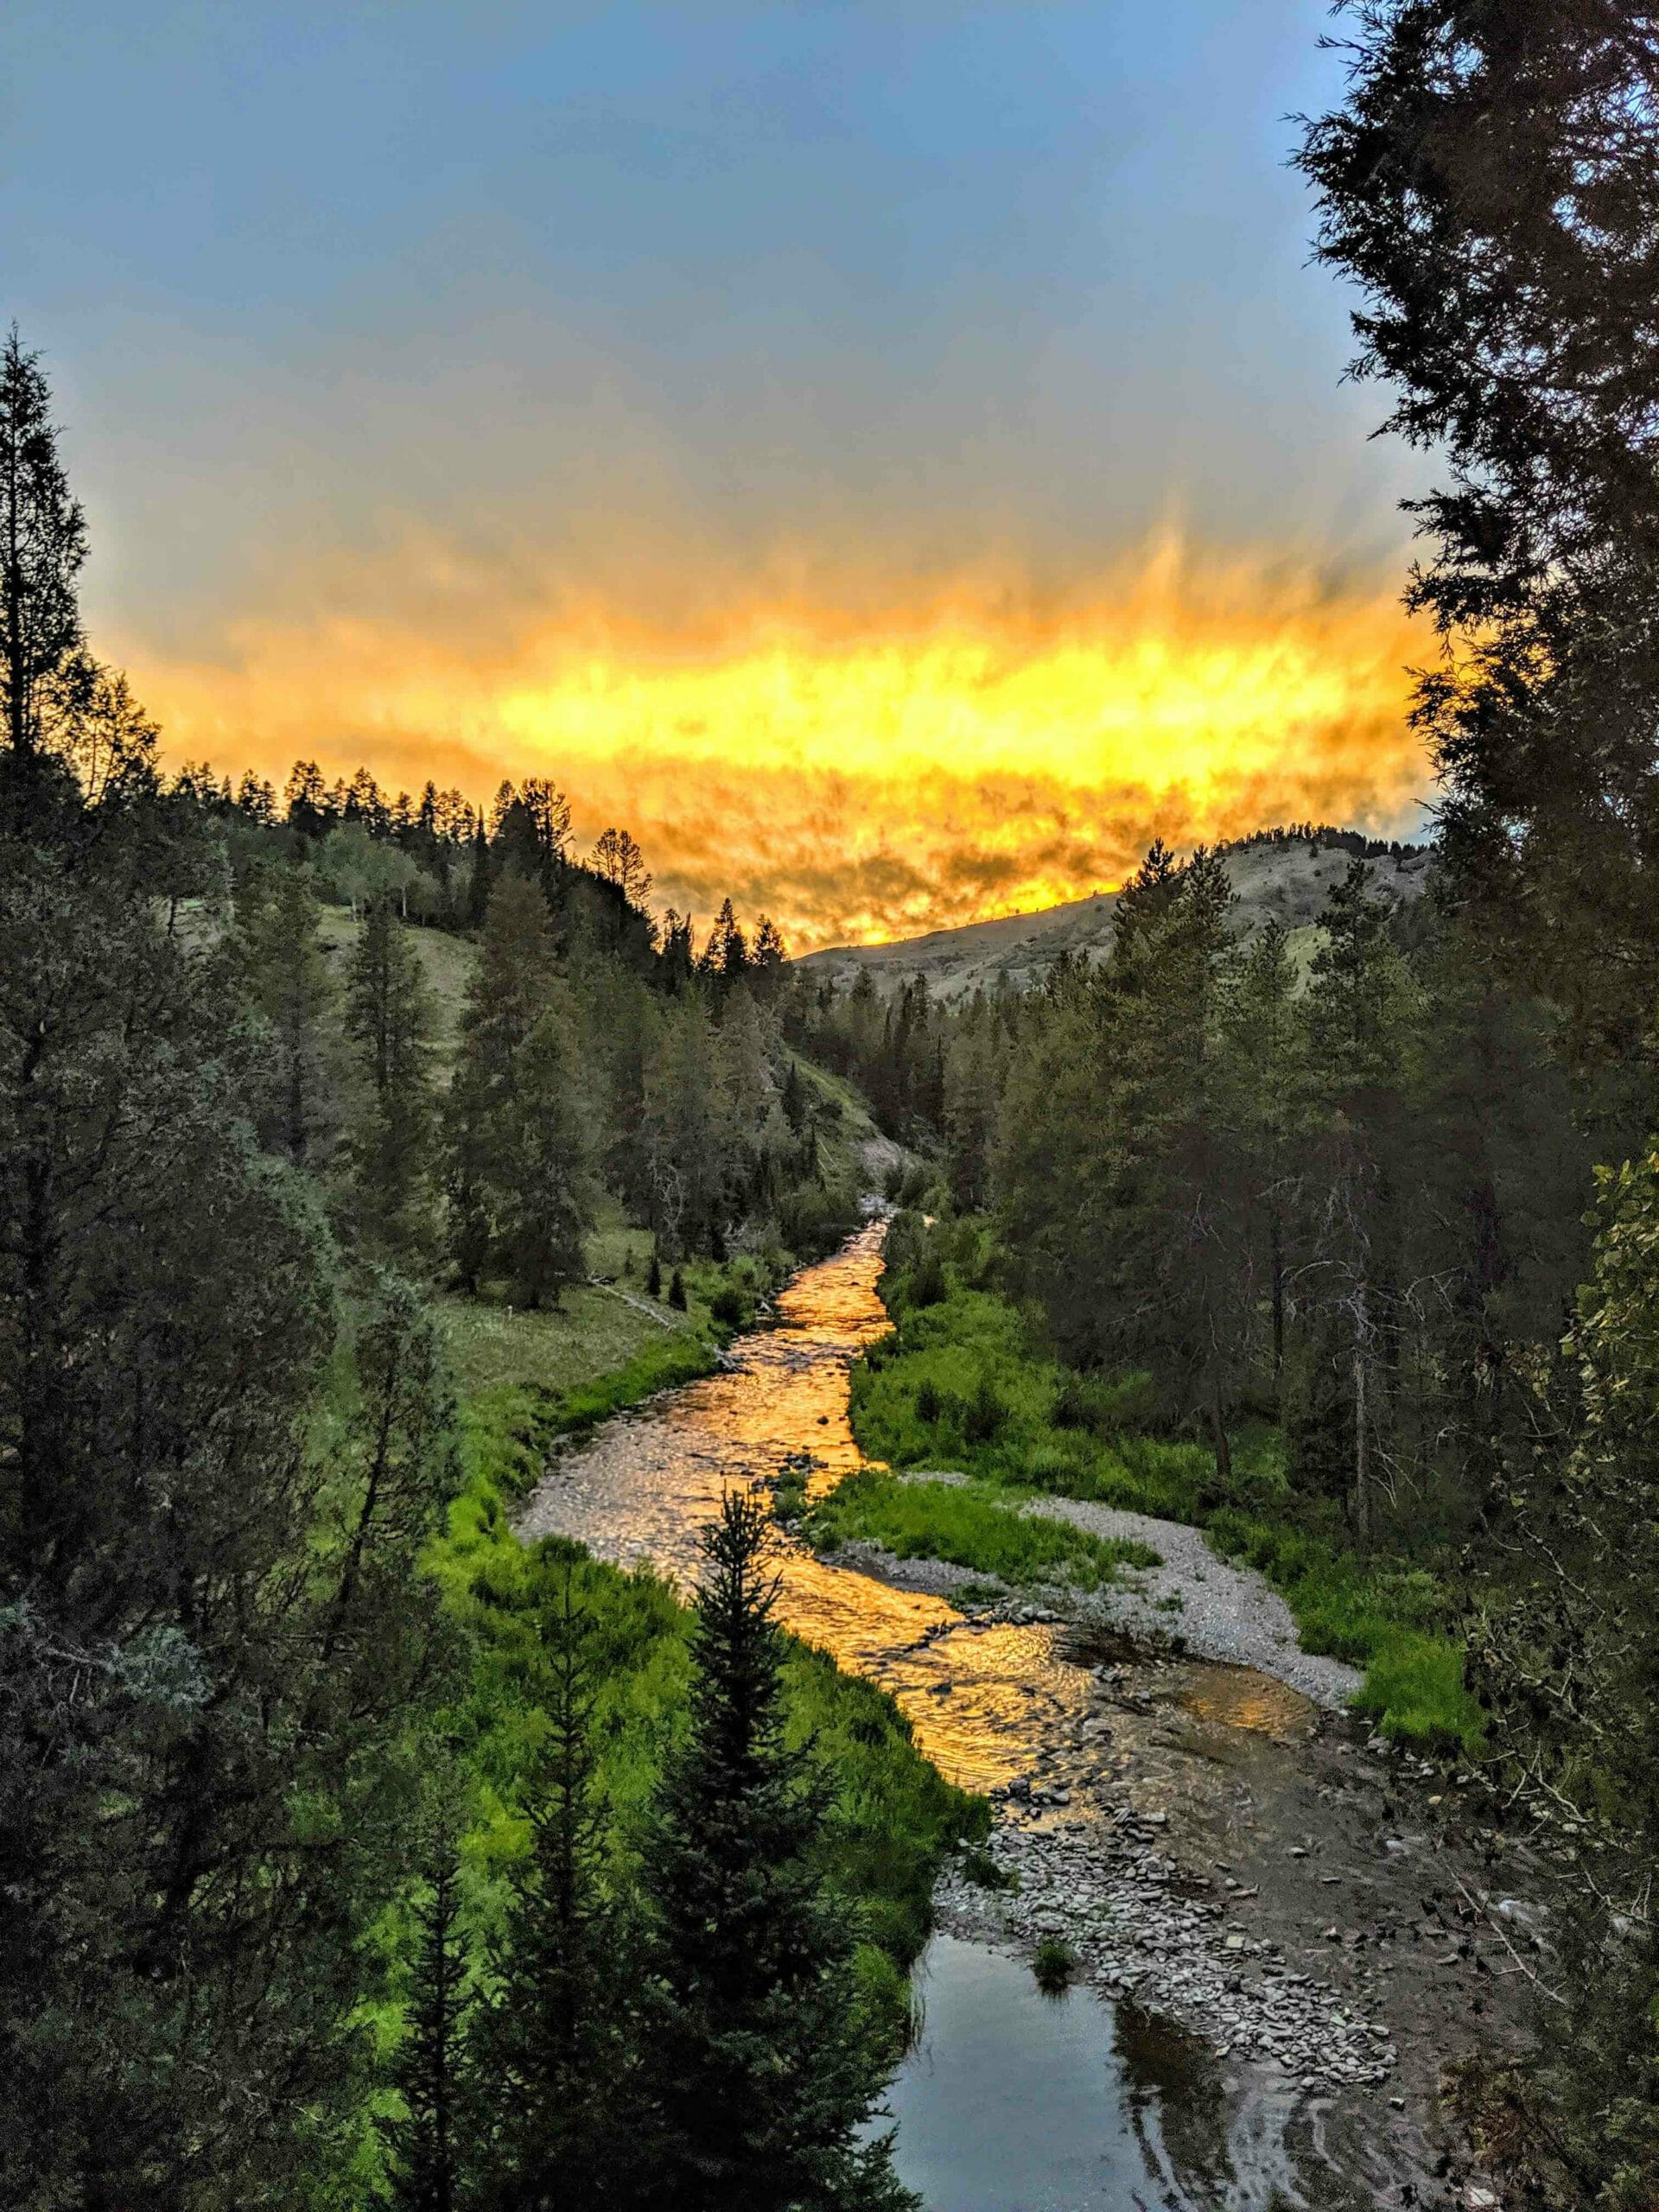 A trout stream running through a canyon at sunset.